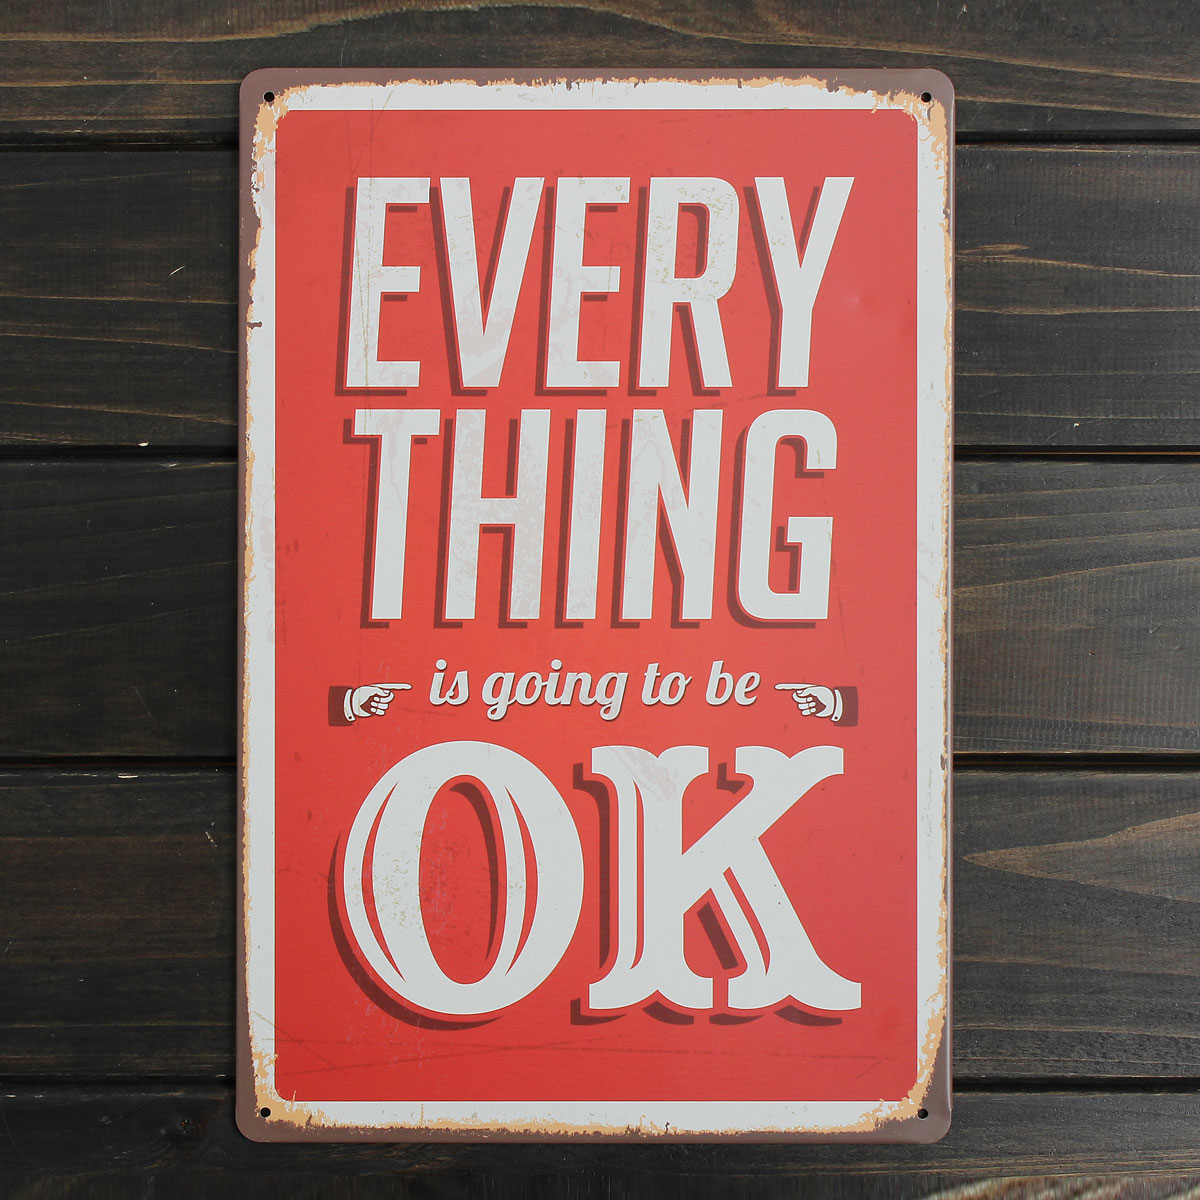 Every thing is OK